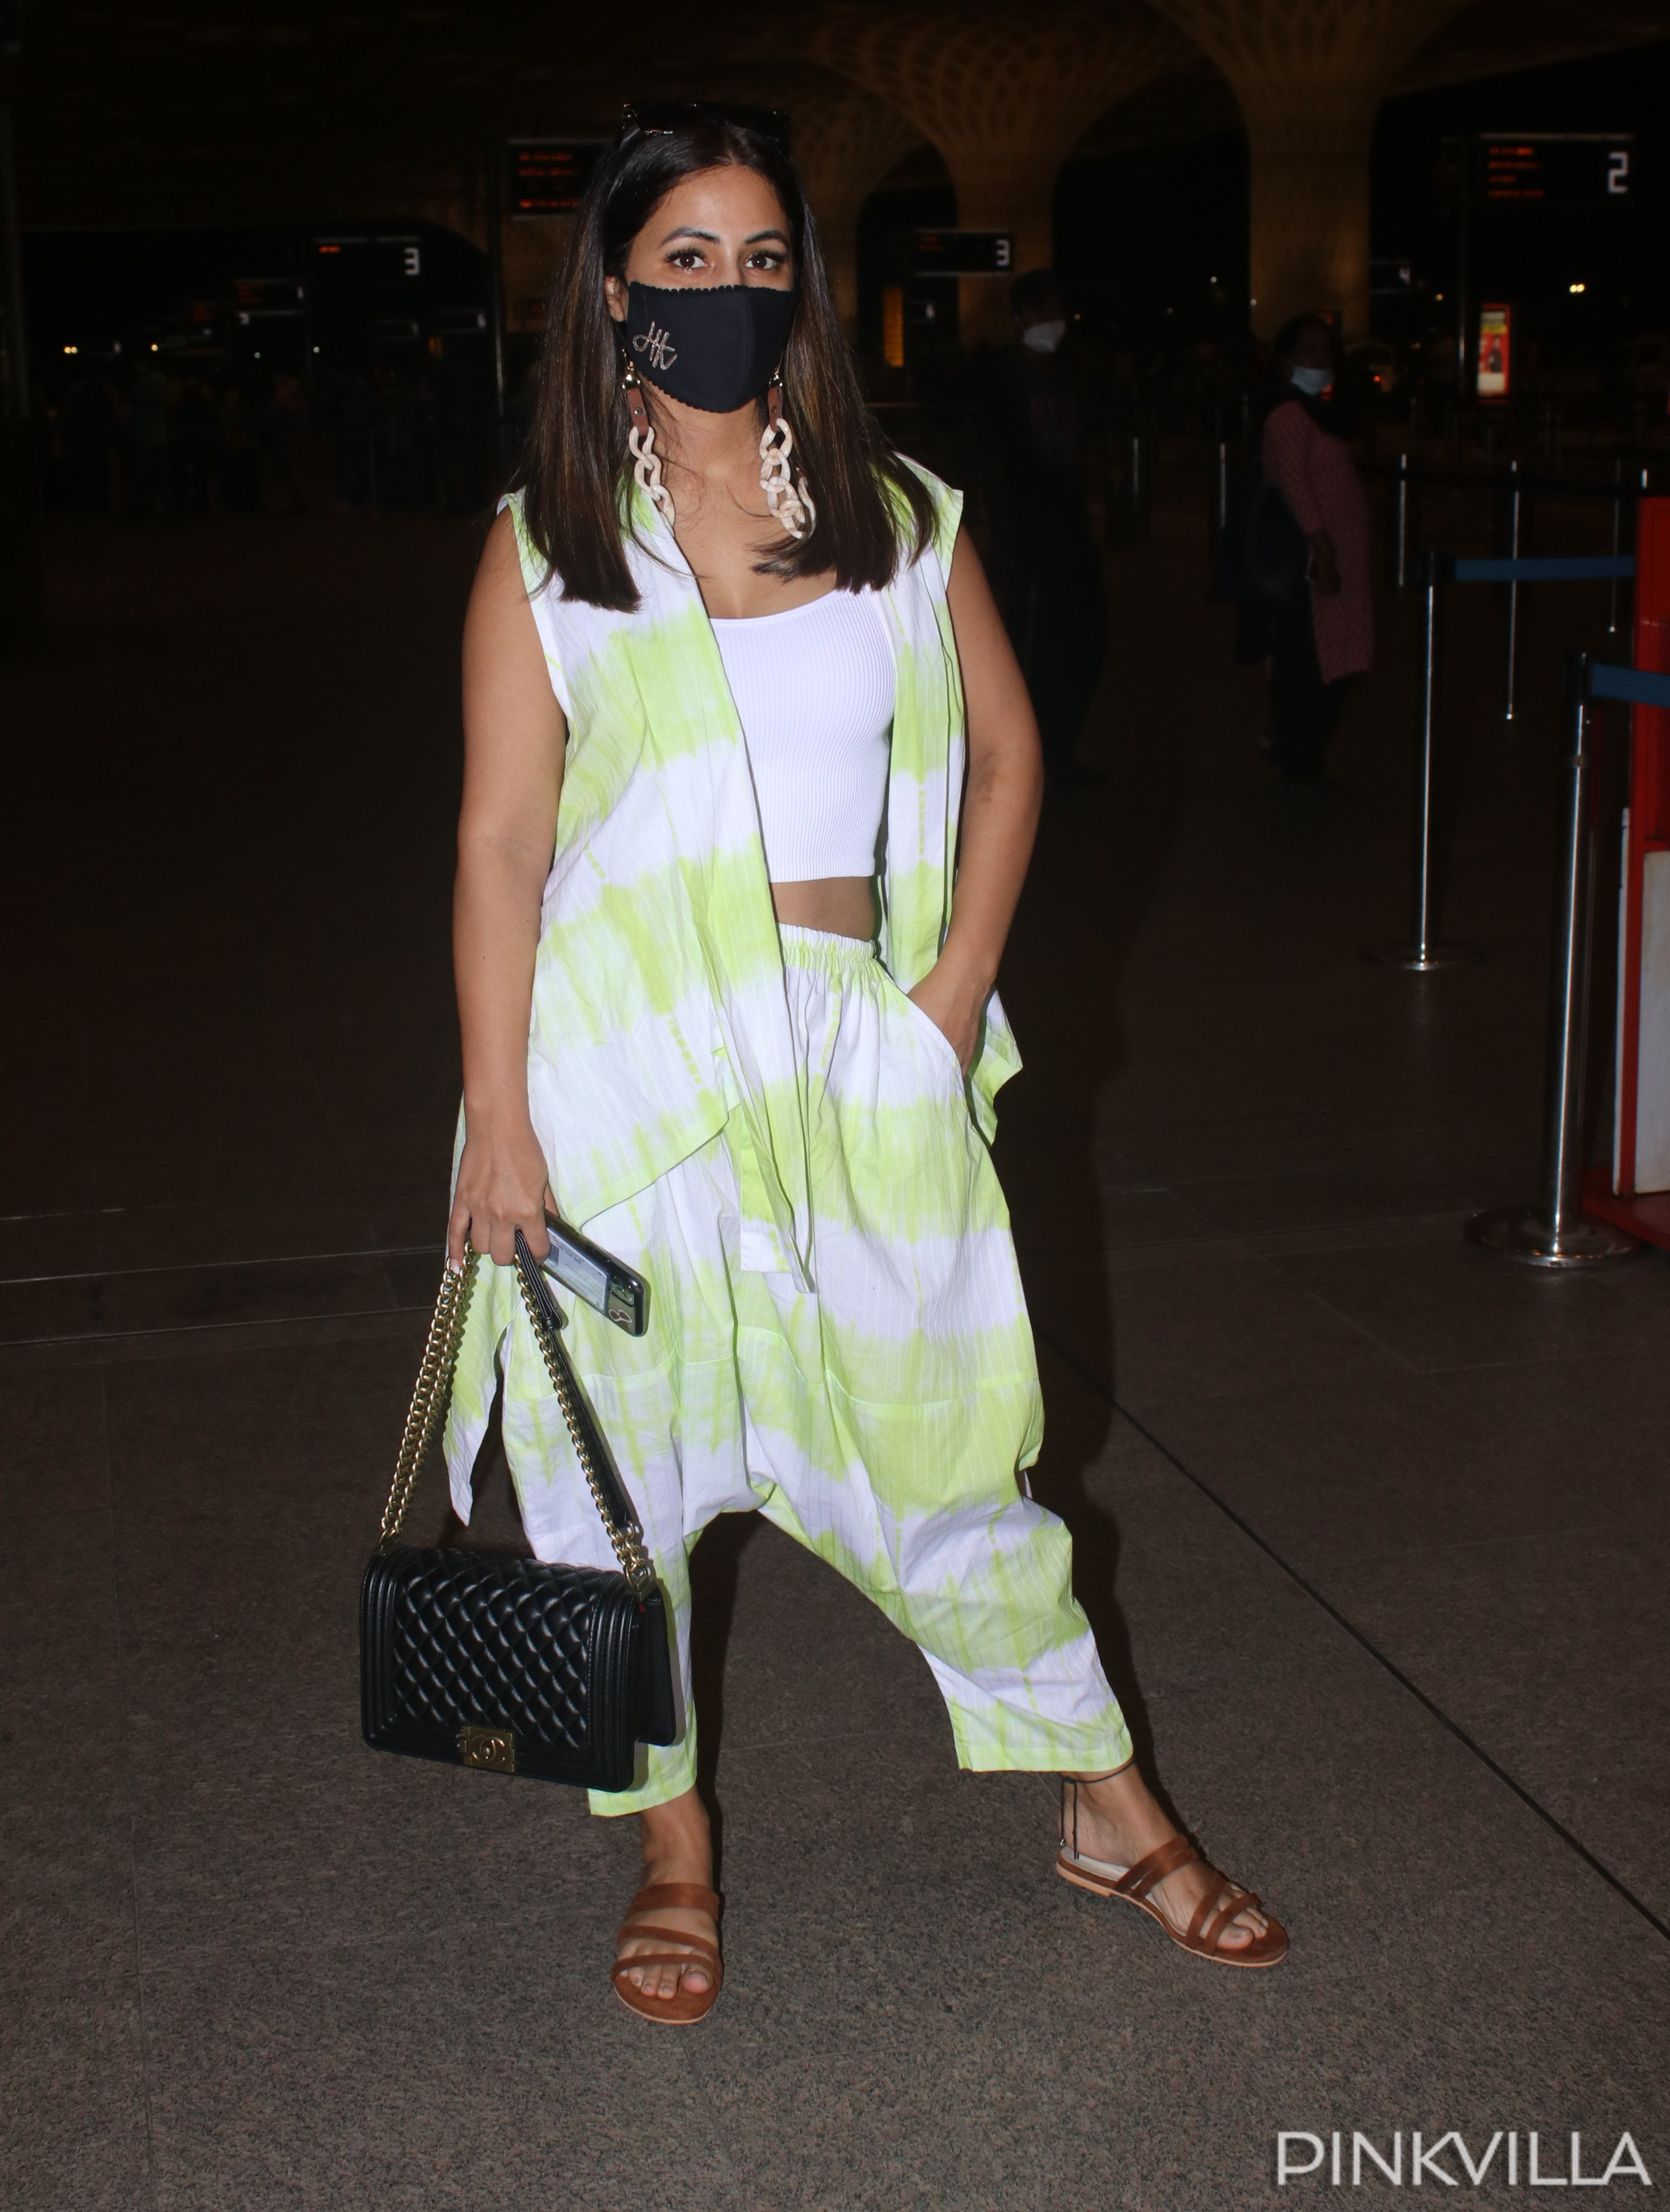 PHOTOS: Hina Khan keeps it comfortable yet stylish for her airport look as she heads to Indore